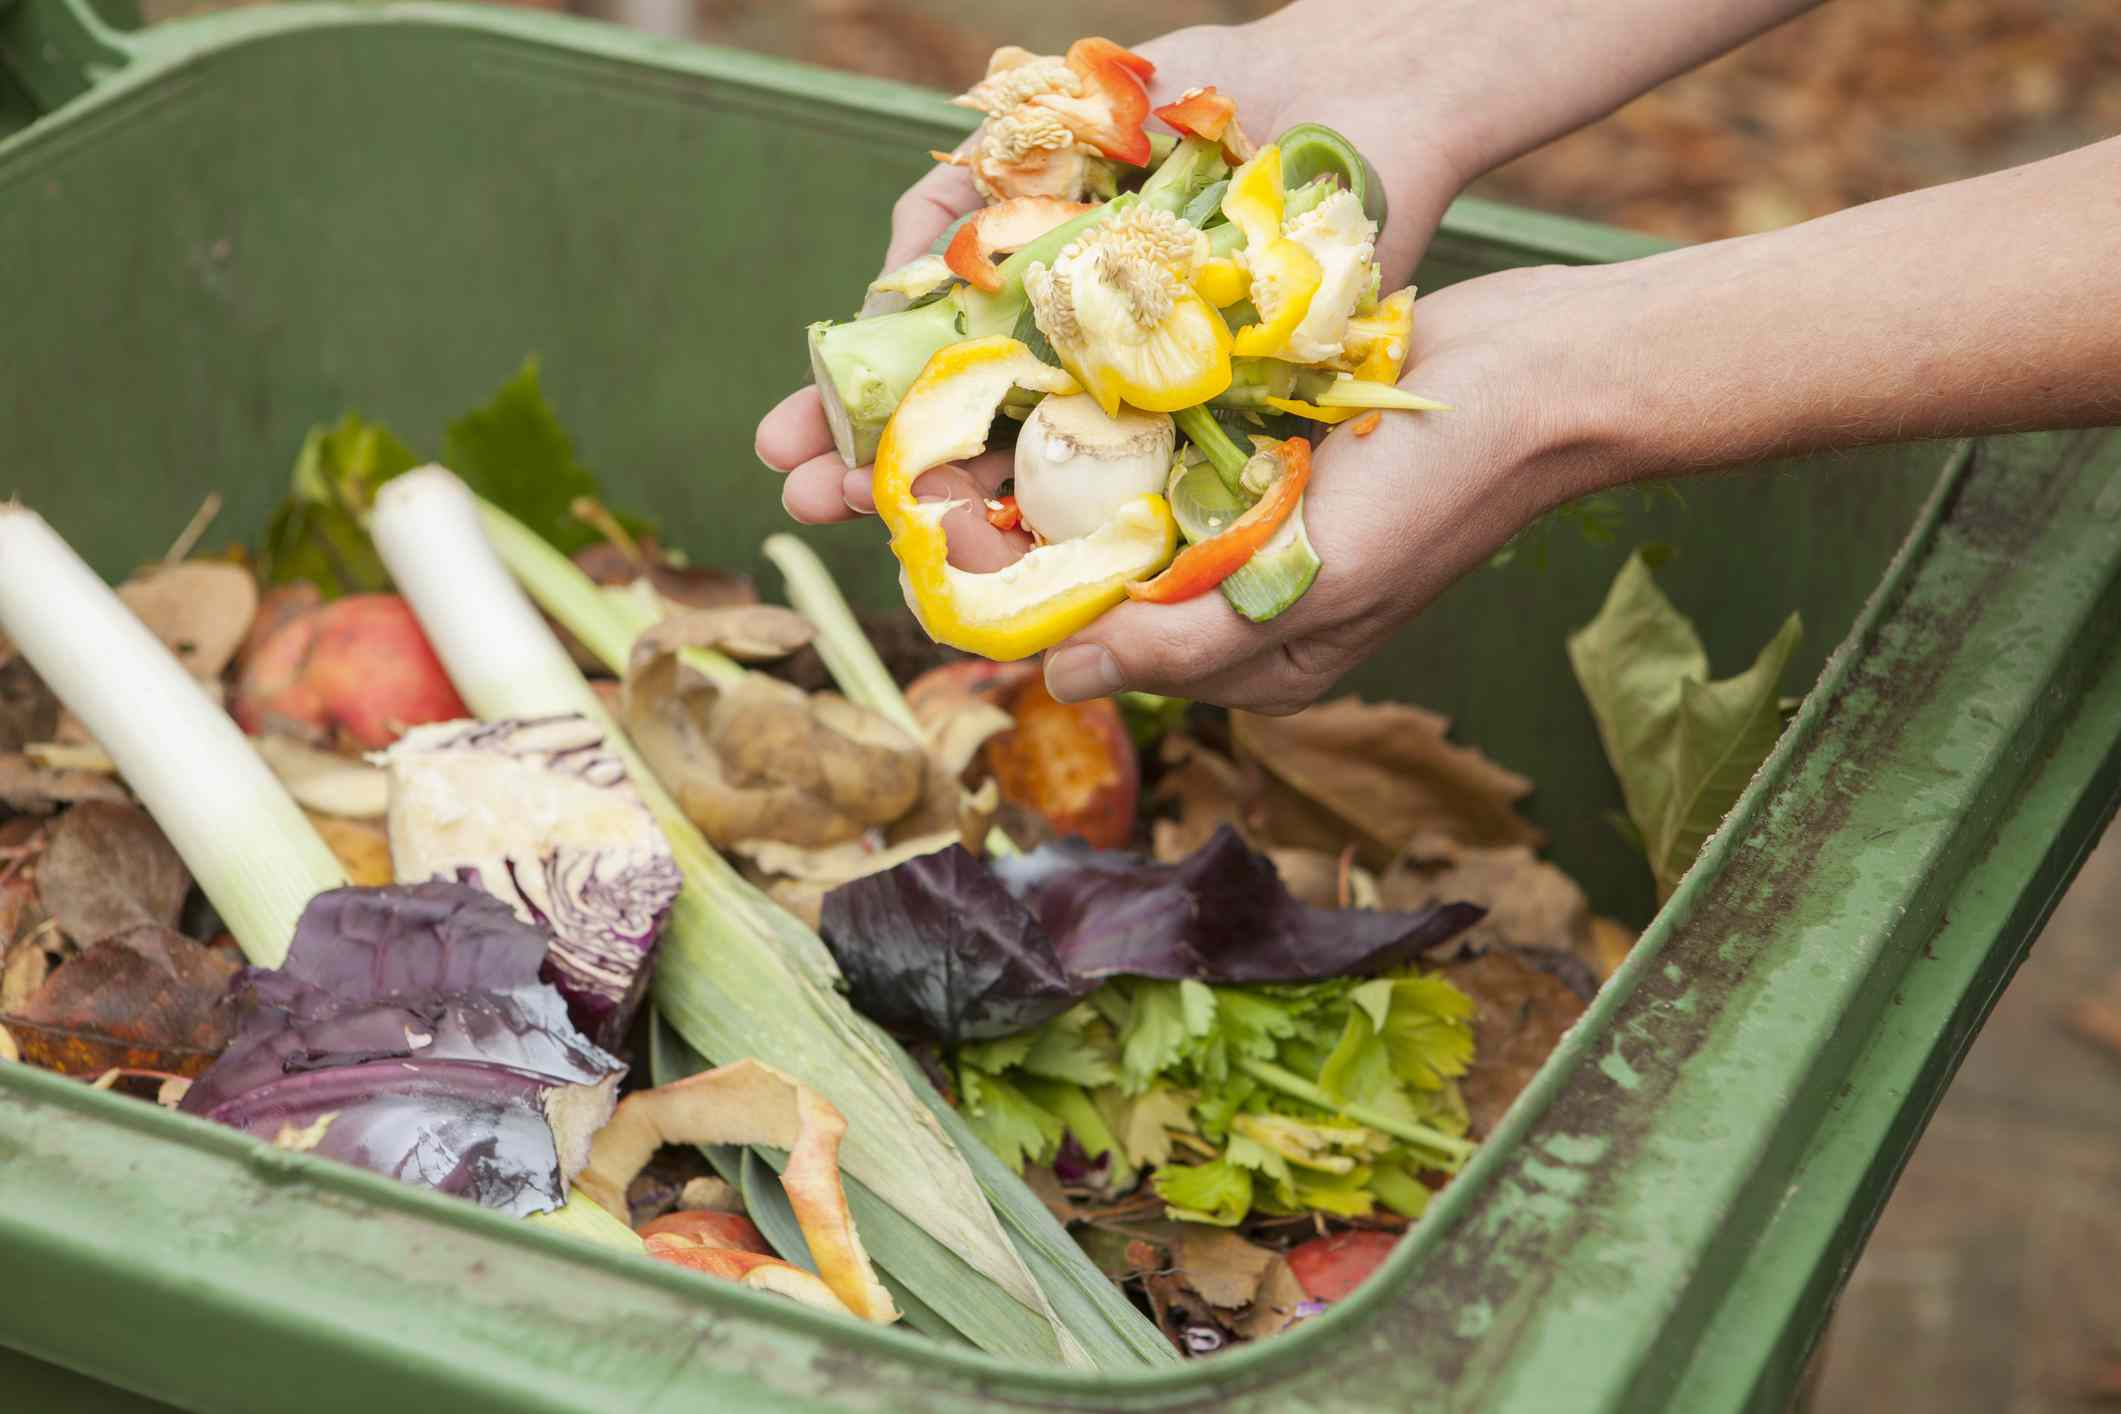 person putting kitchen waste into a compost bin